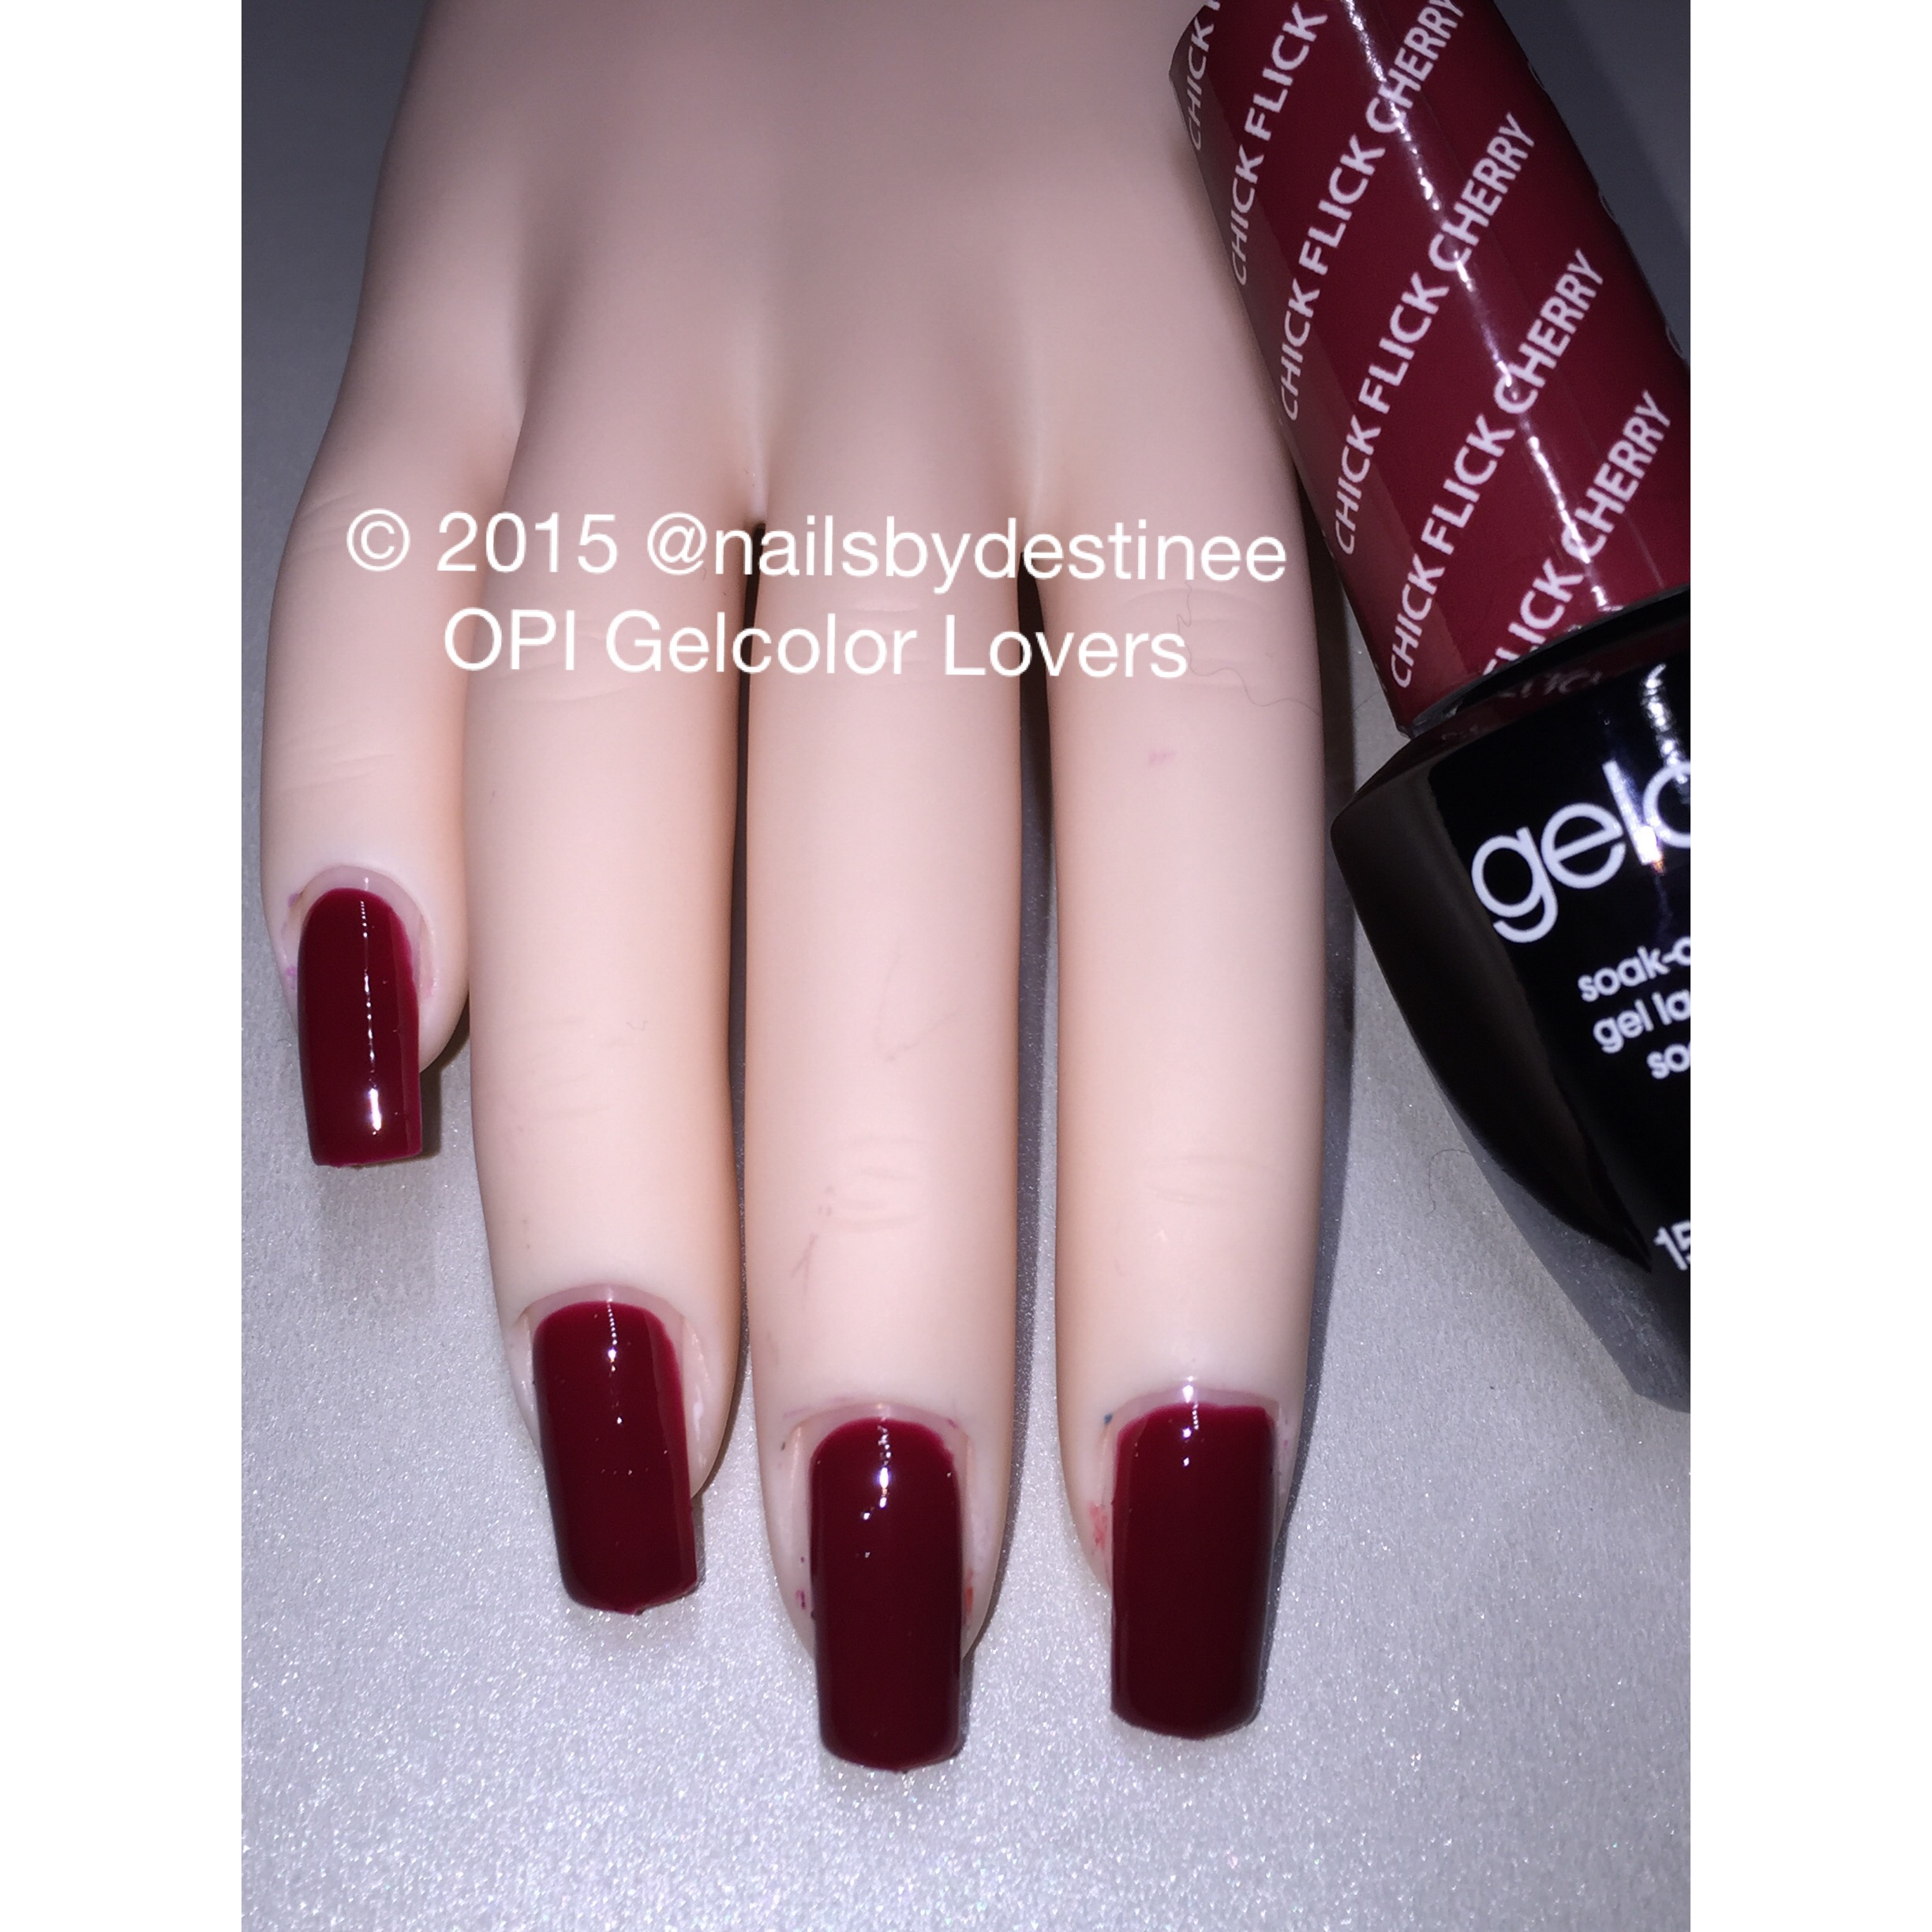 The Classic Collection – OPI GelColor Lovers